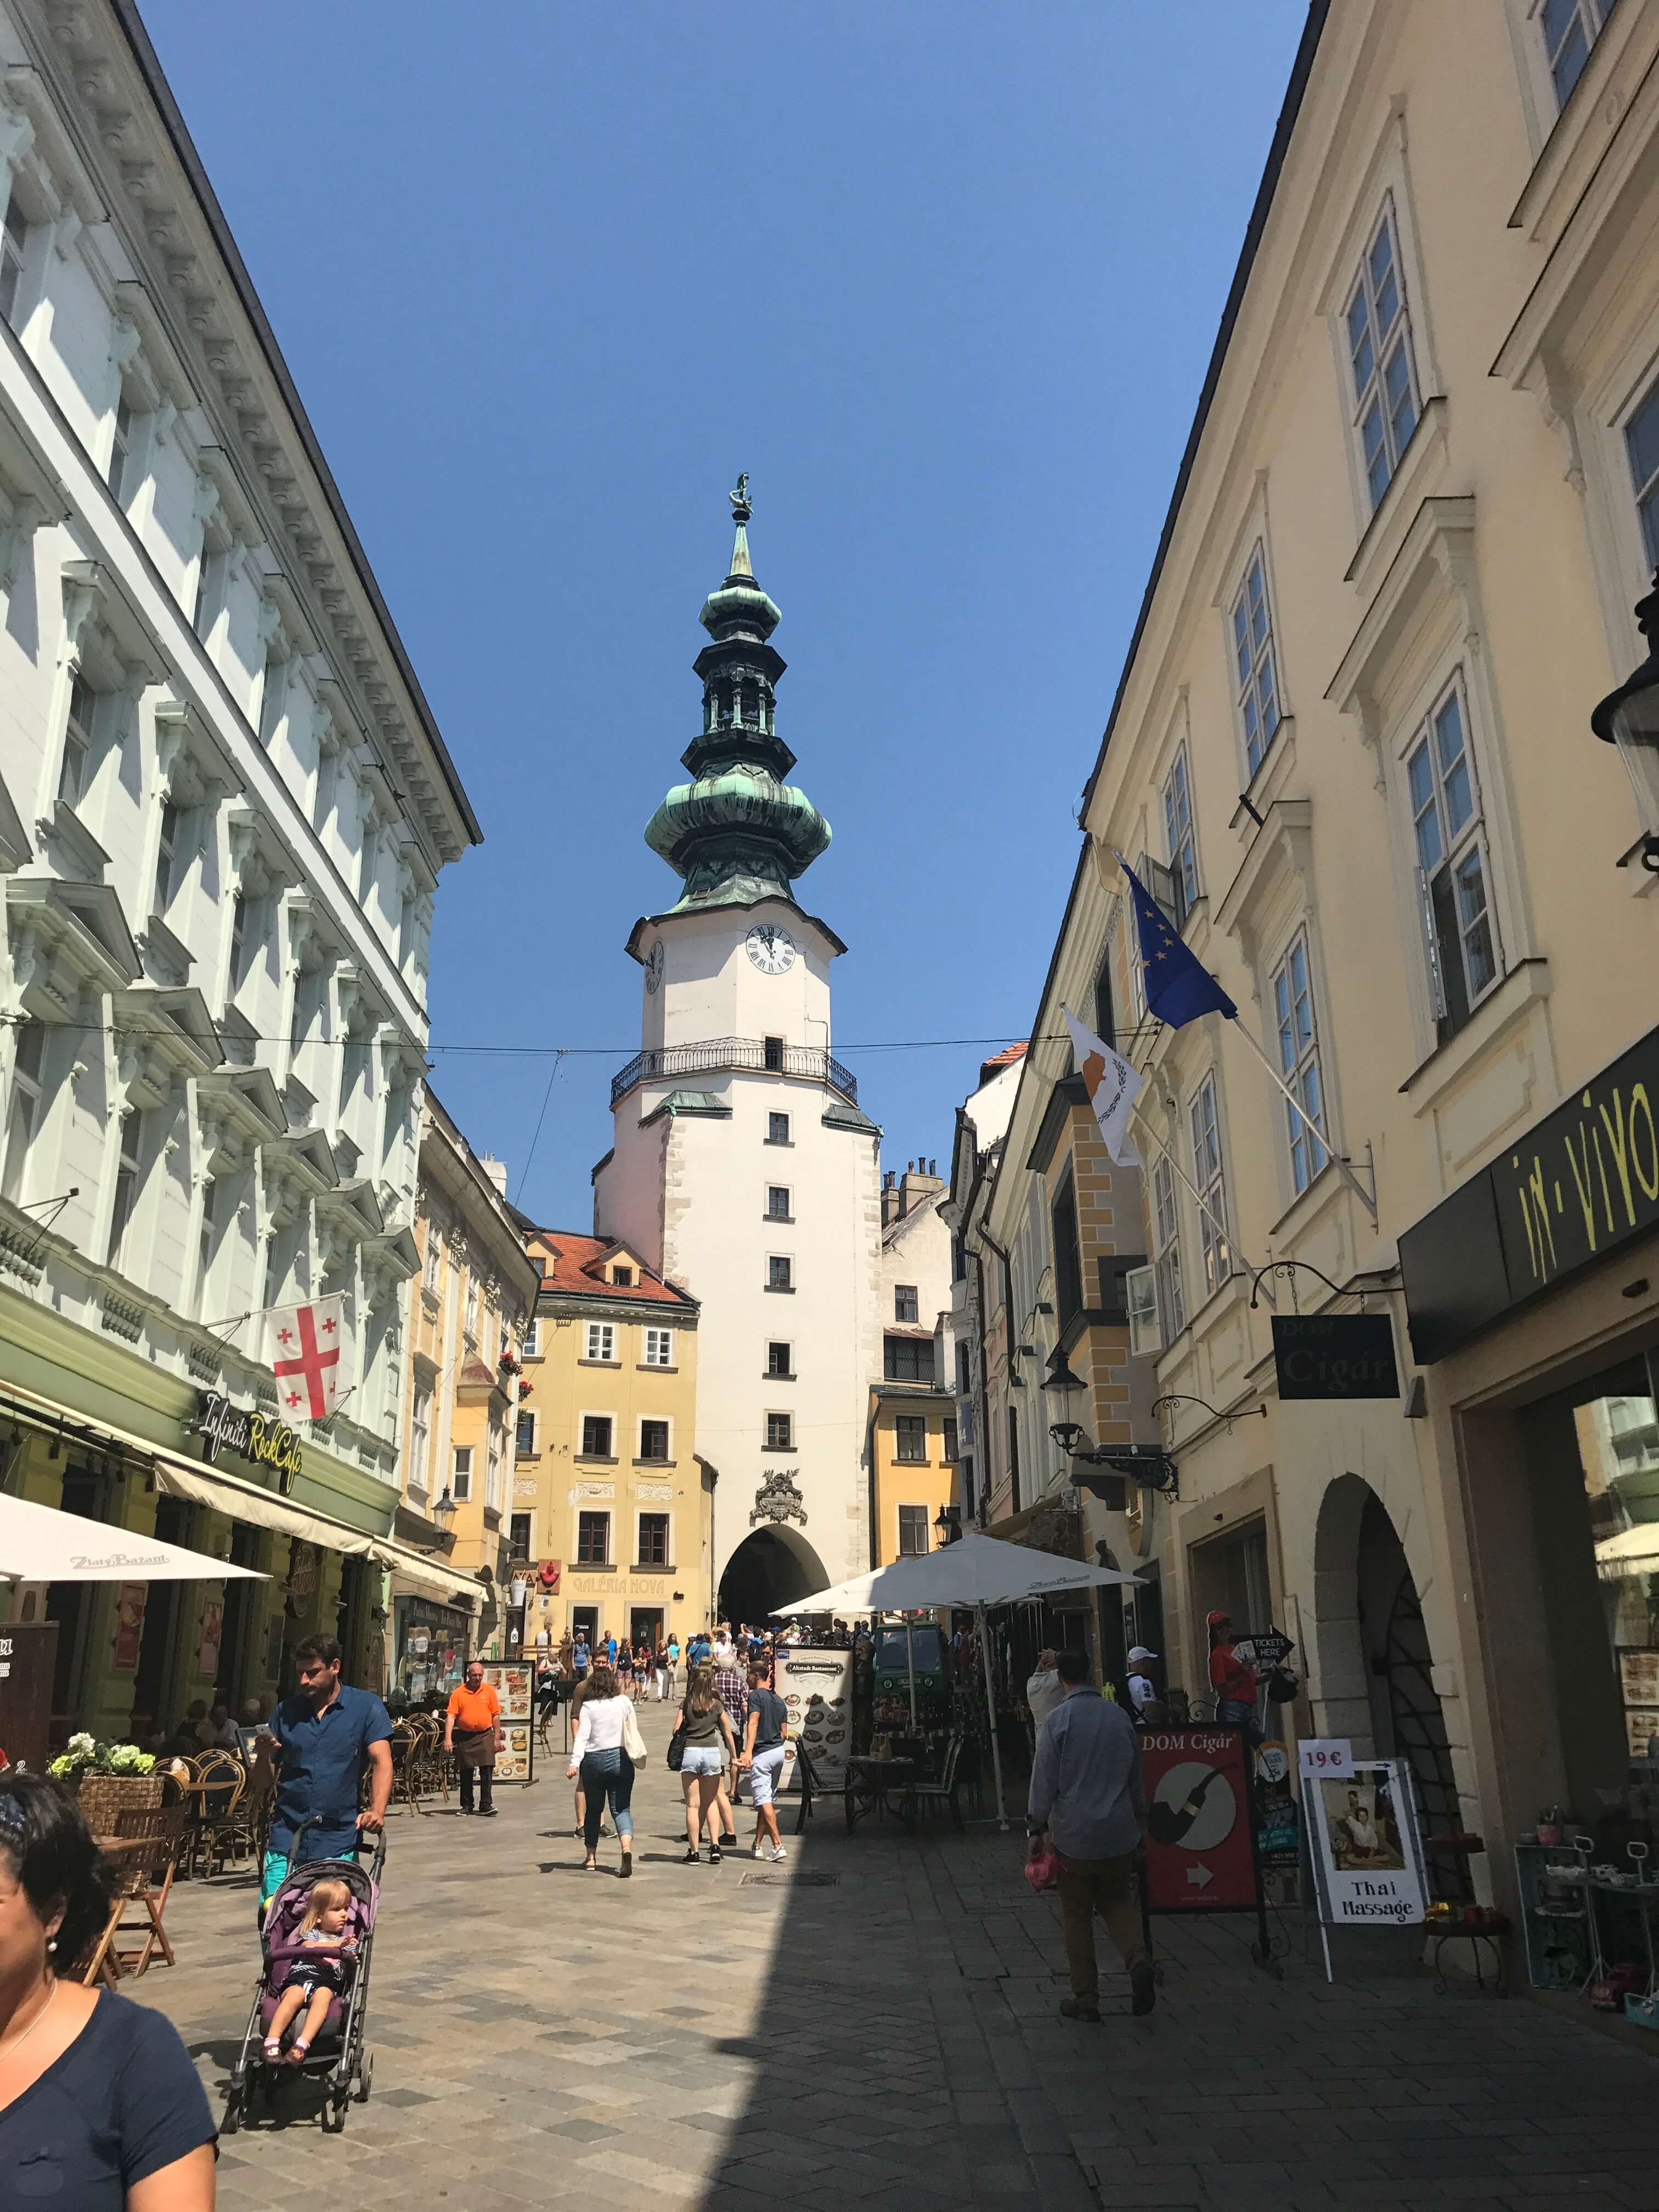 View of Michael's Gate from one of the busy shopping streets in Bratislava.